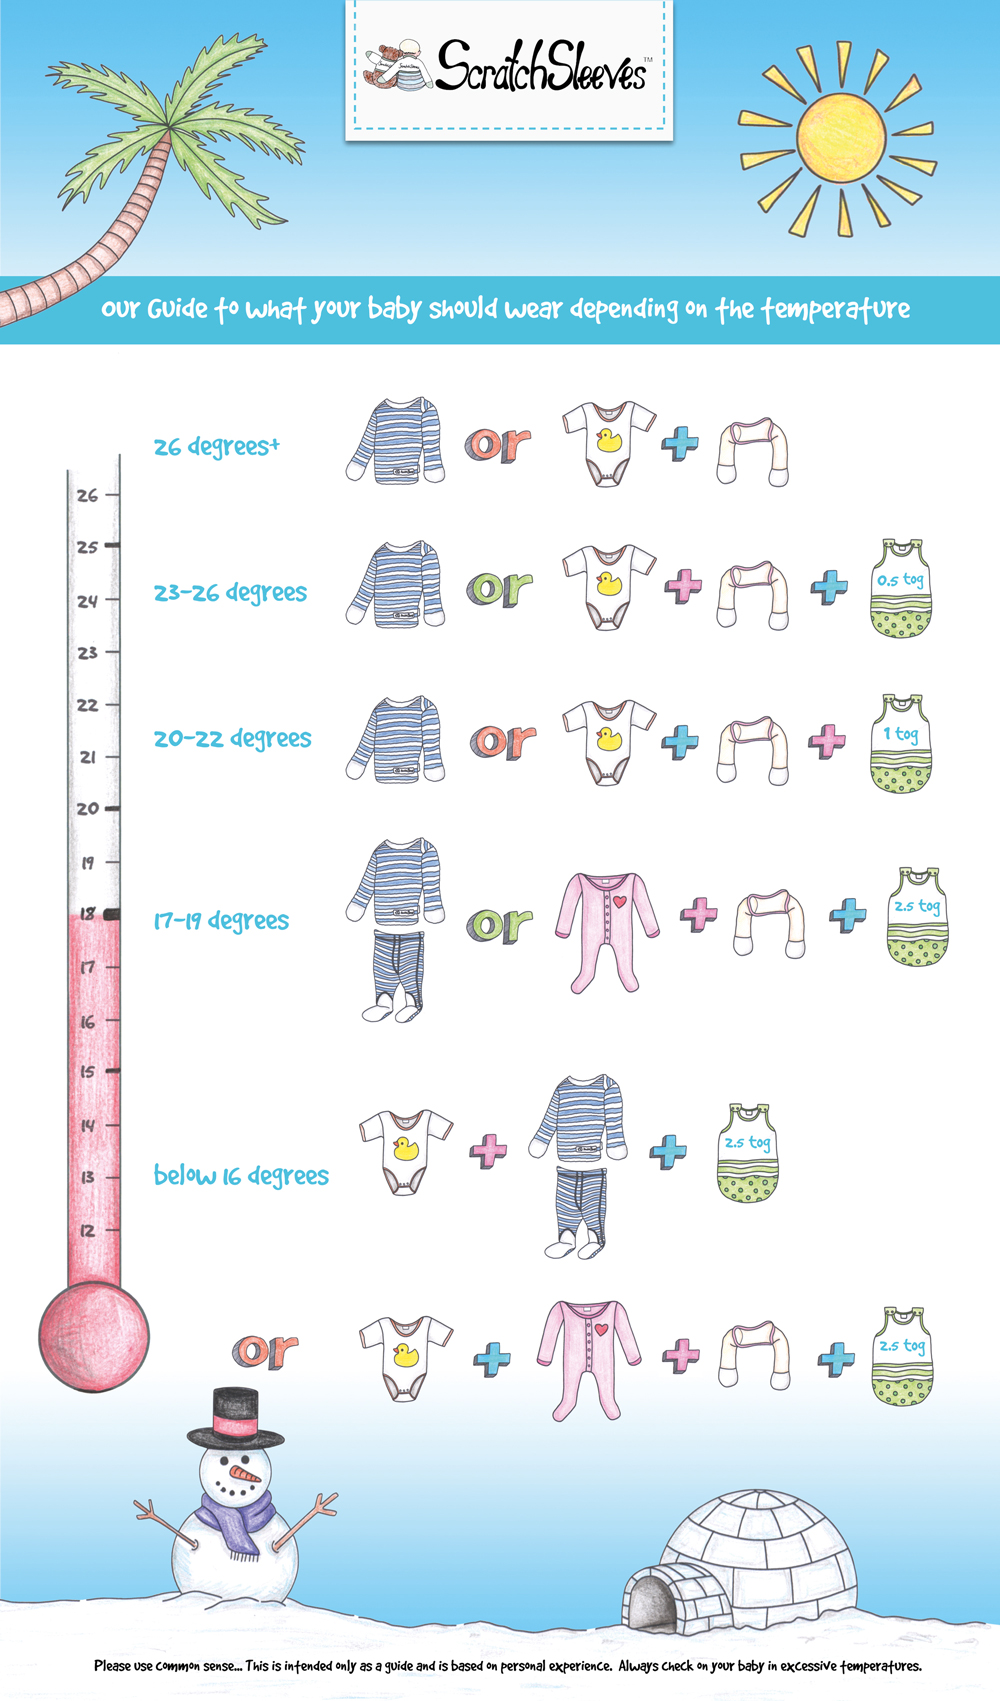 What Temperature Should A Baby S Room Be In The Summer